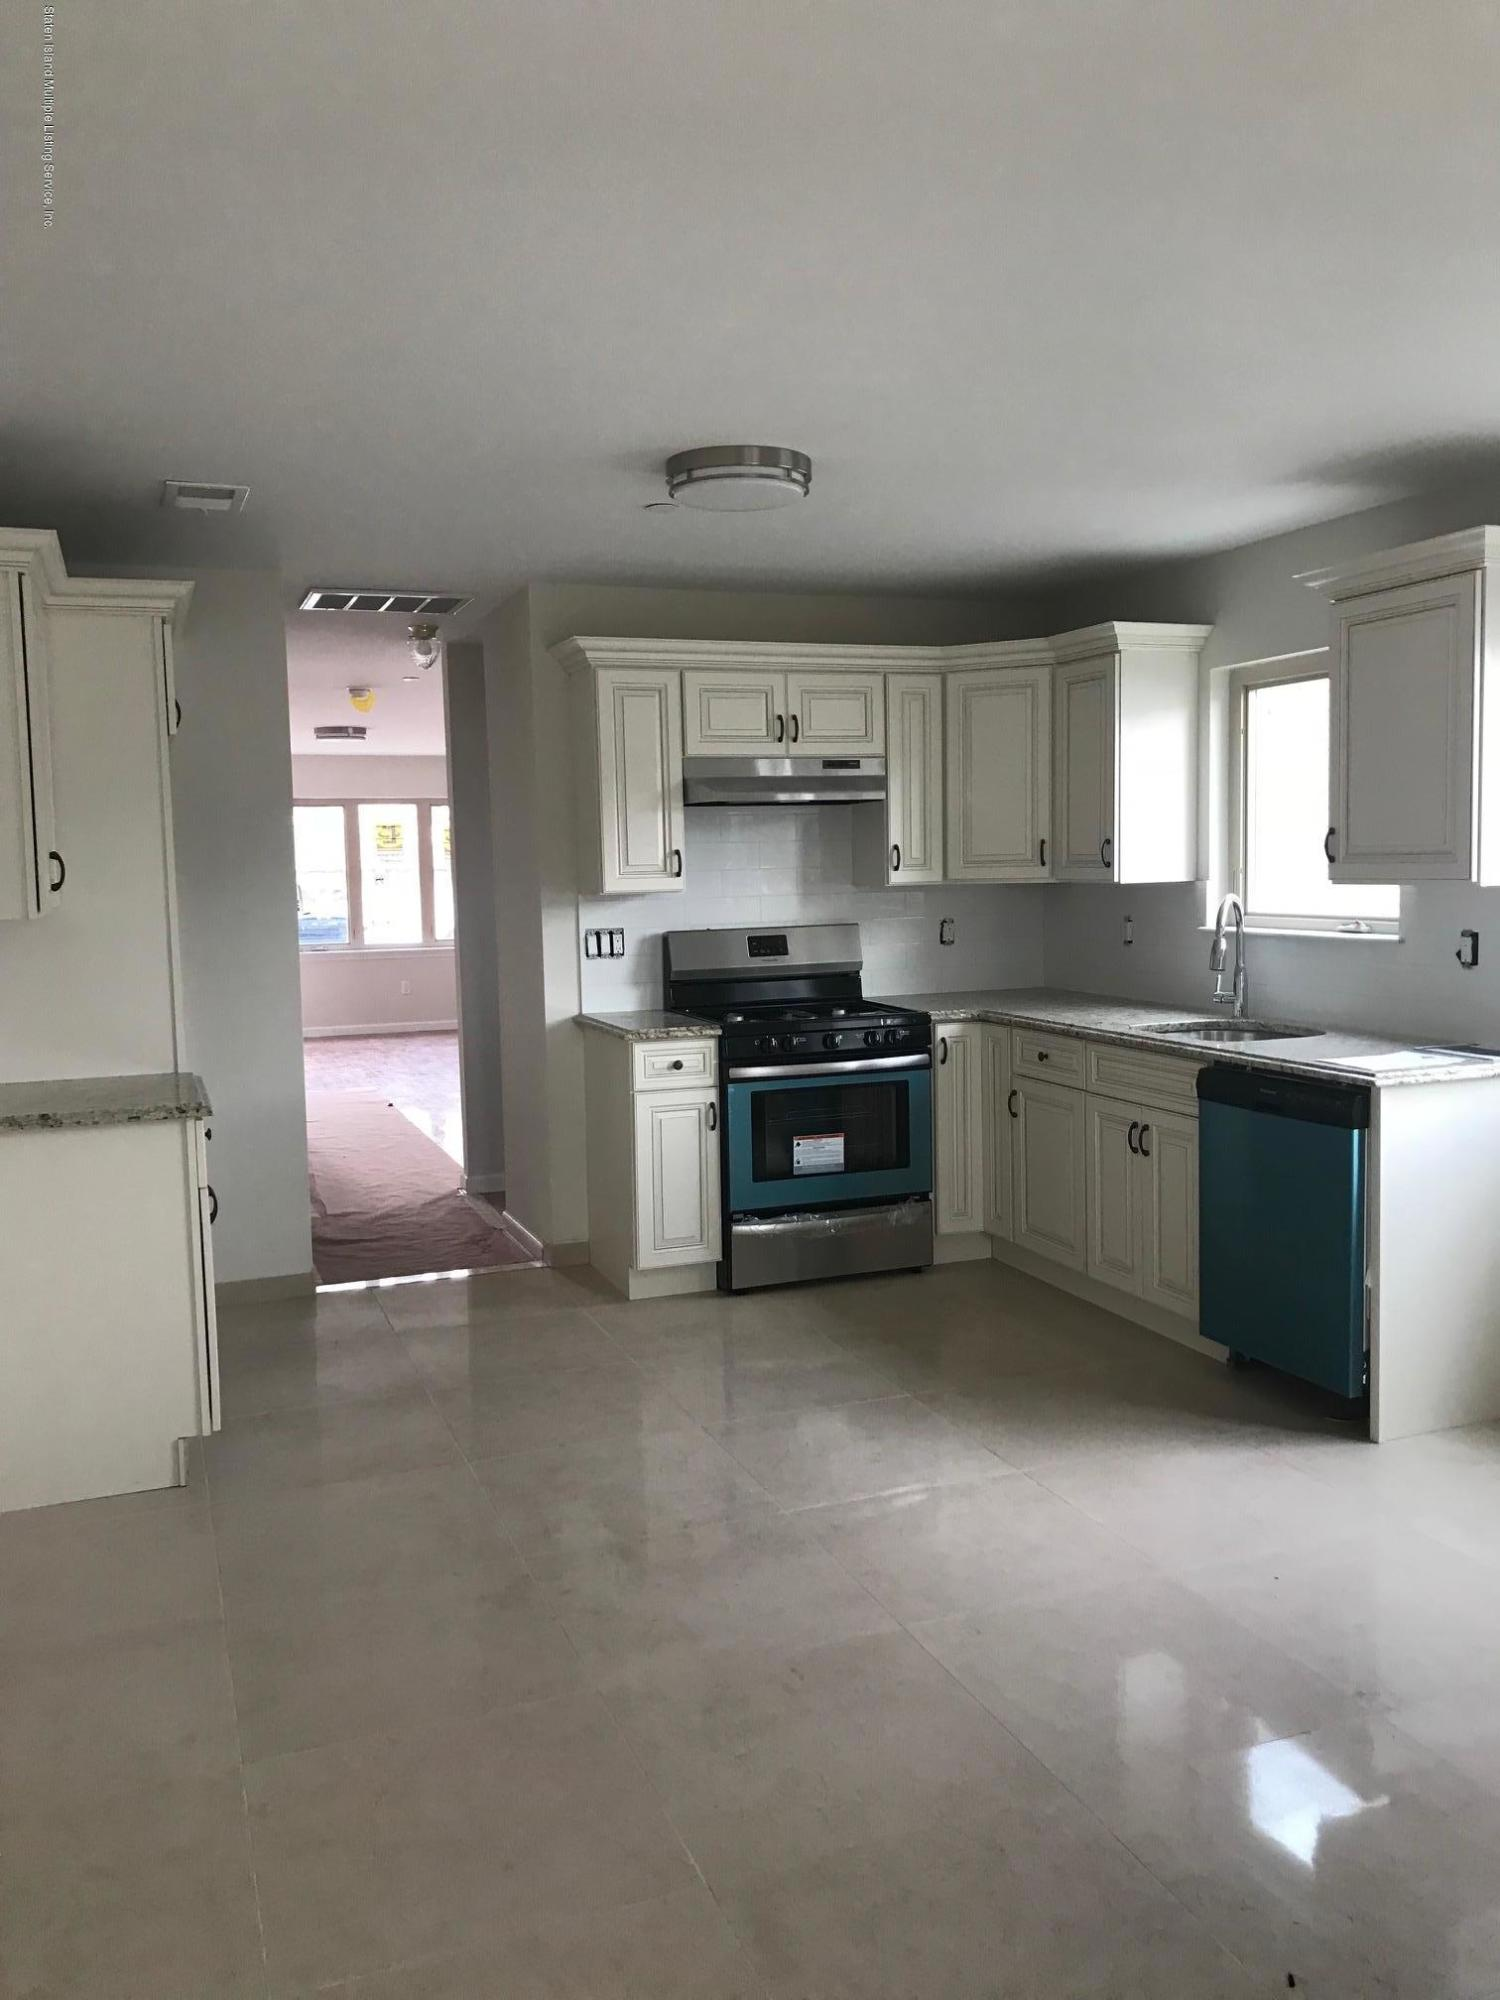 Single Family - Semi-Attached 14 Summerfield Place  Staten Island, NY 10303, MLS-1120998-3